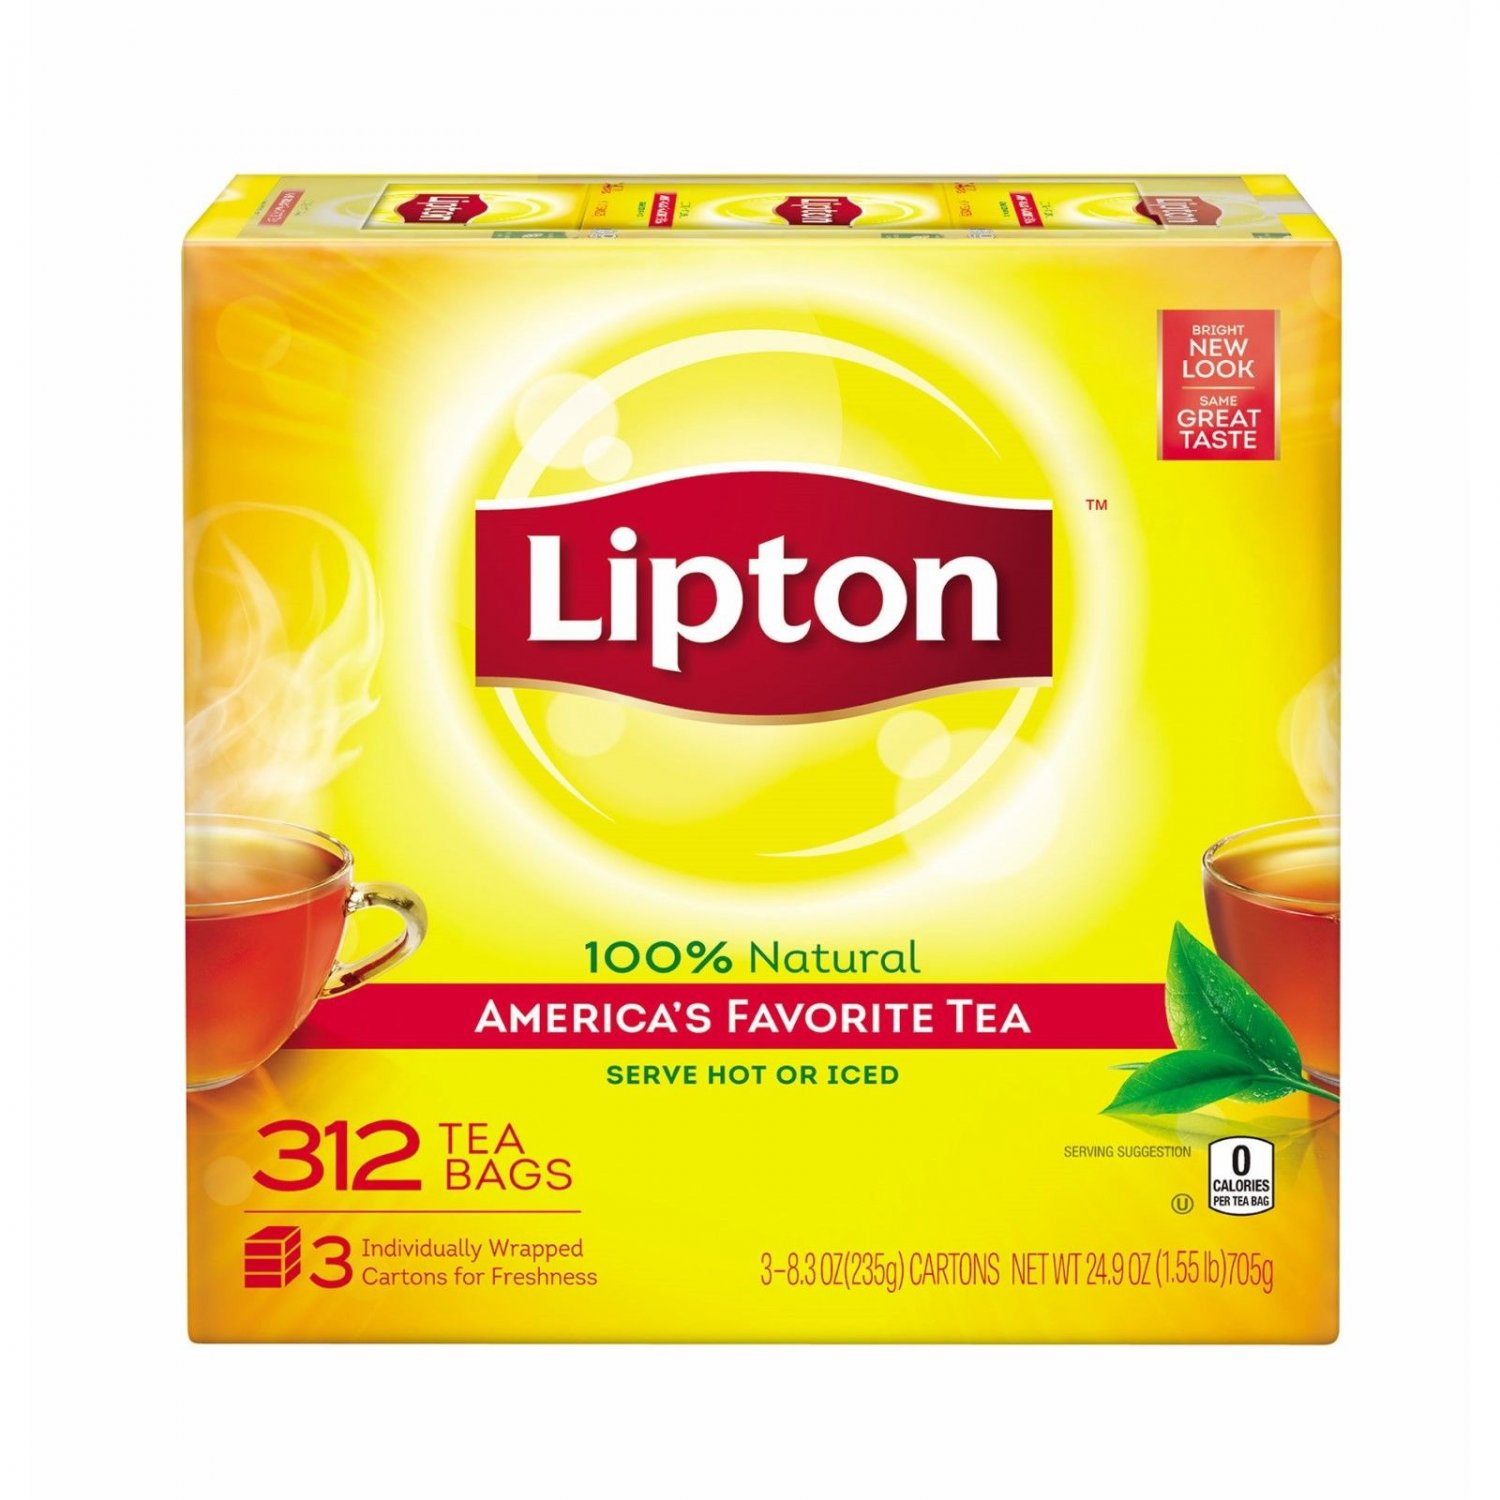 Lipton Tea Bags, 312 ct BRAND NEW